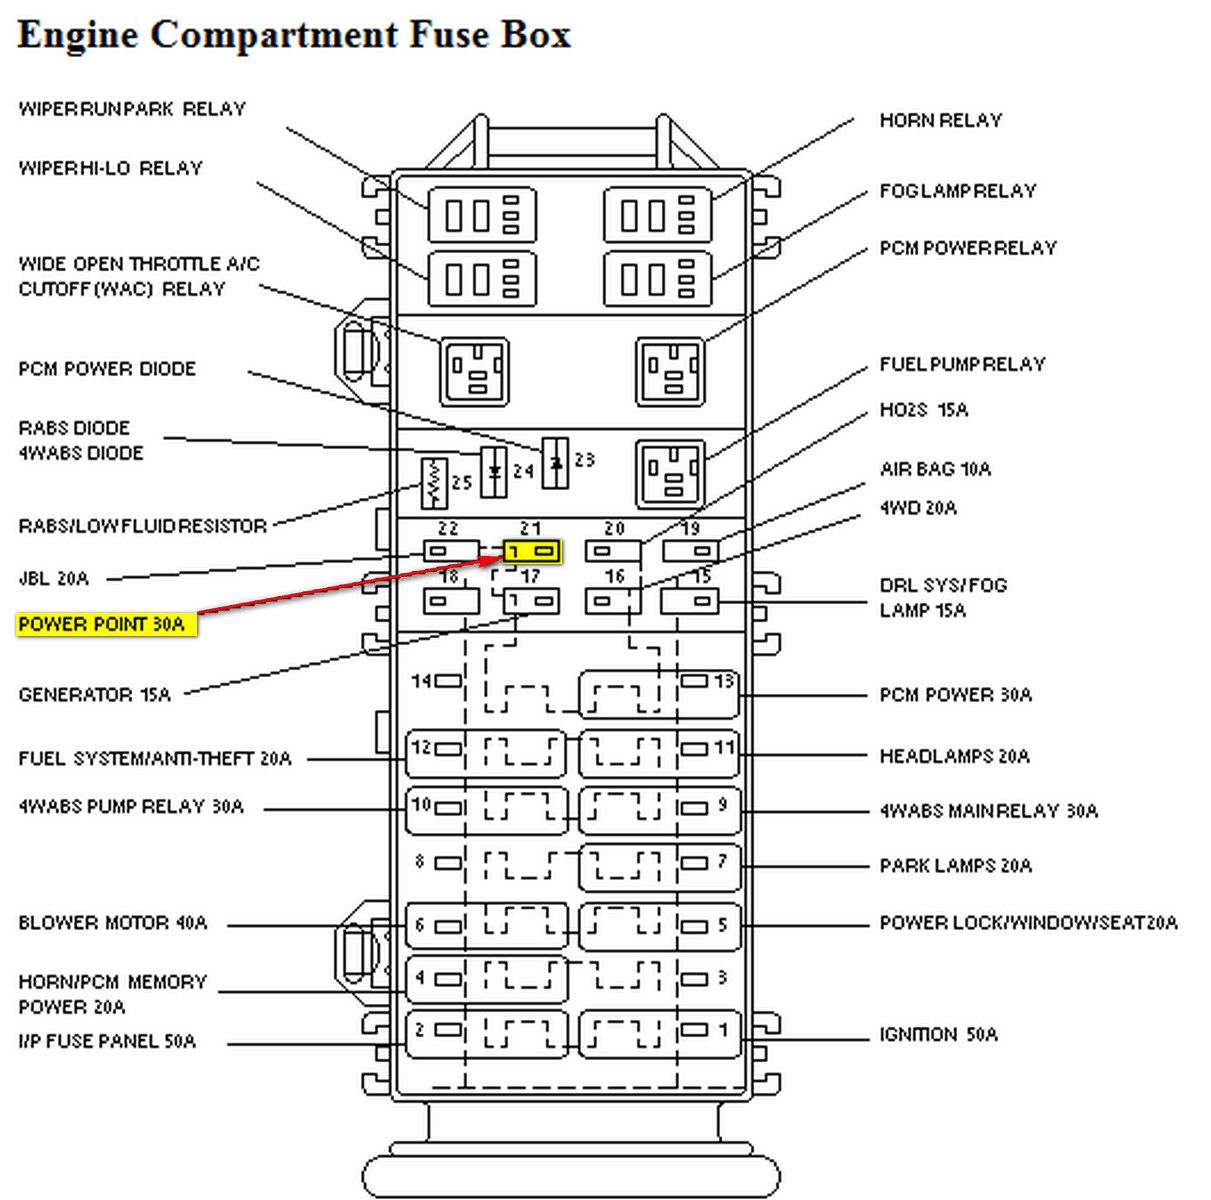 8a55967da7ae1bd251b795845886bd24 2002 ford ranger fuse diagram 1997 ford ranger fuse box diagram fuse box diagram 1998 ford ranger xlt at gsmx.co